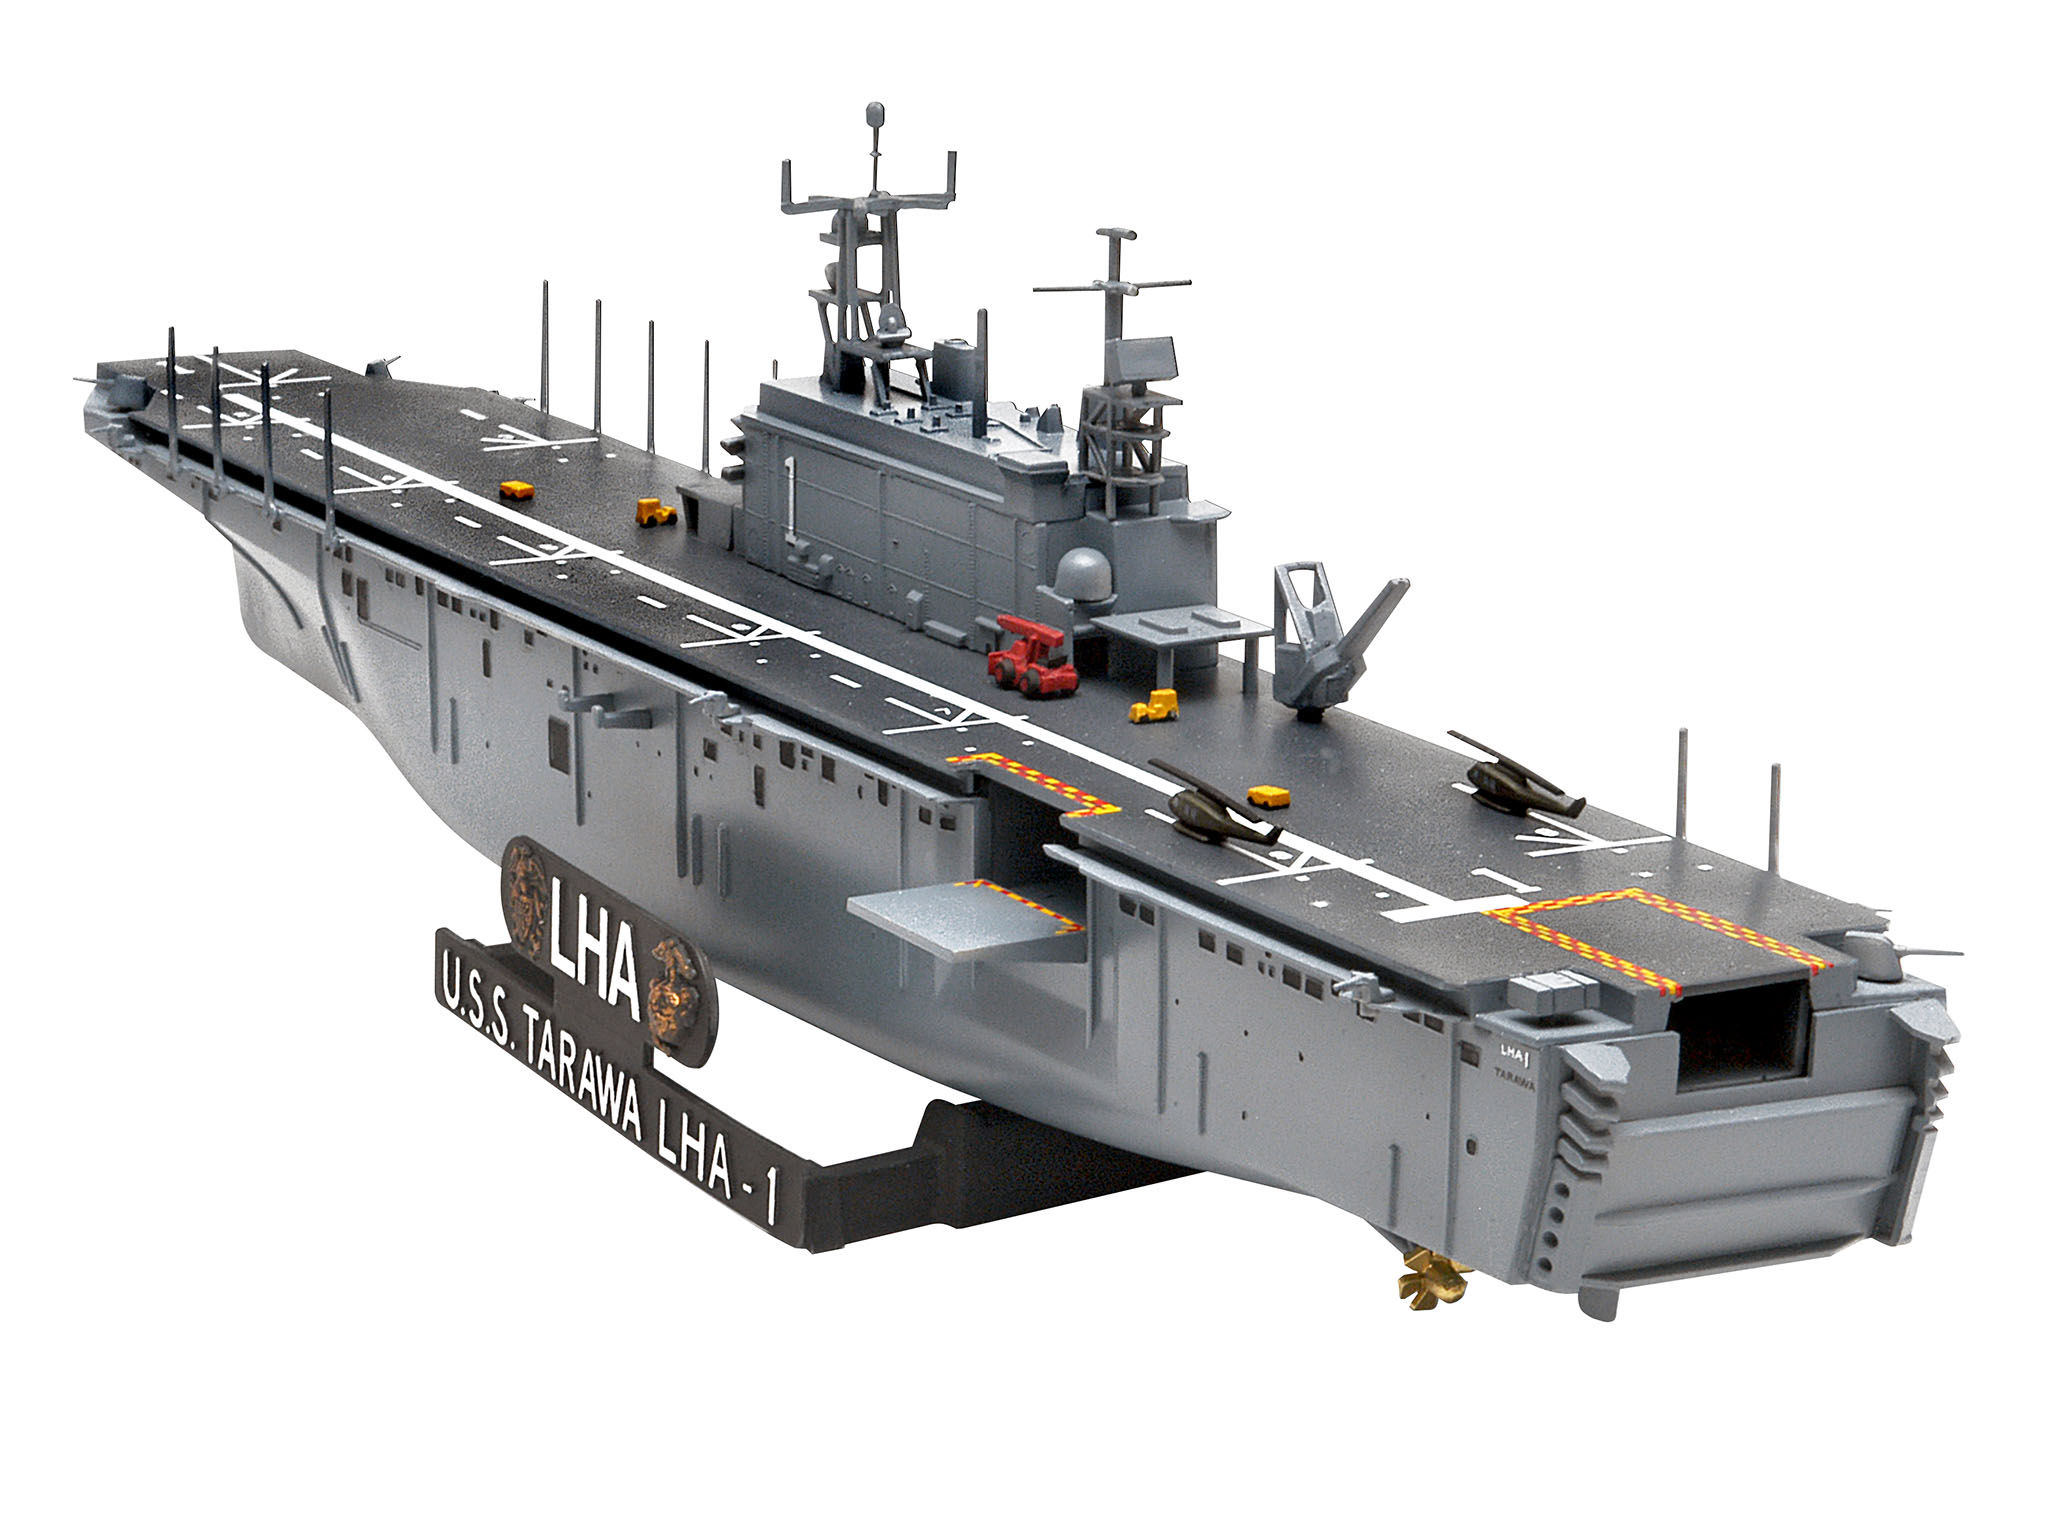 Revell of Germany Assault Ship USS Tarawa LHA-1 1:720 Scale